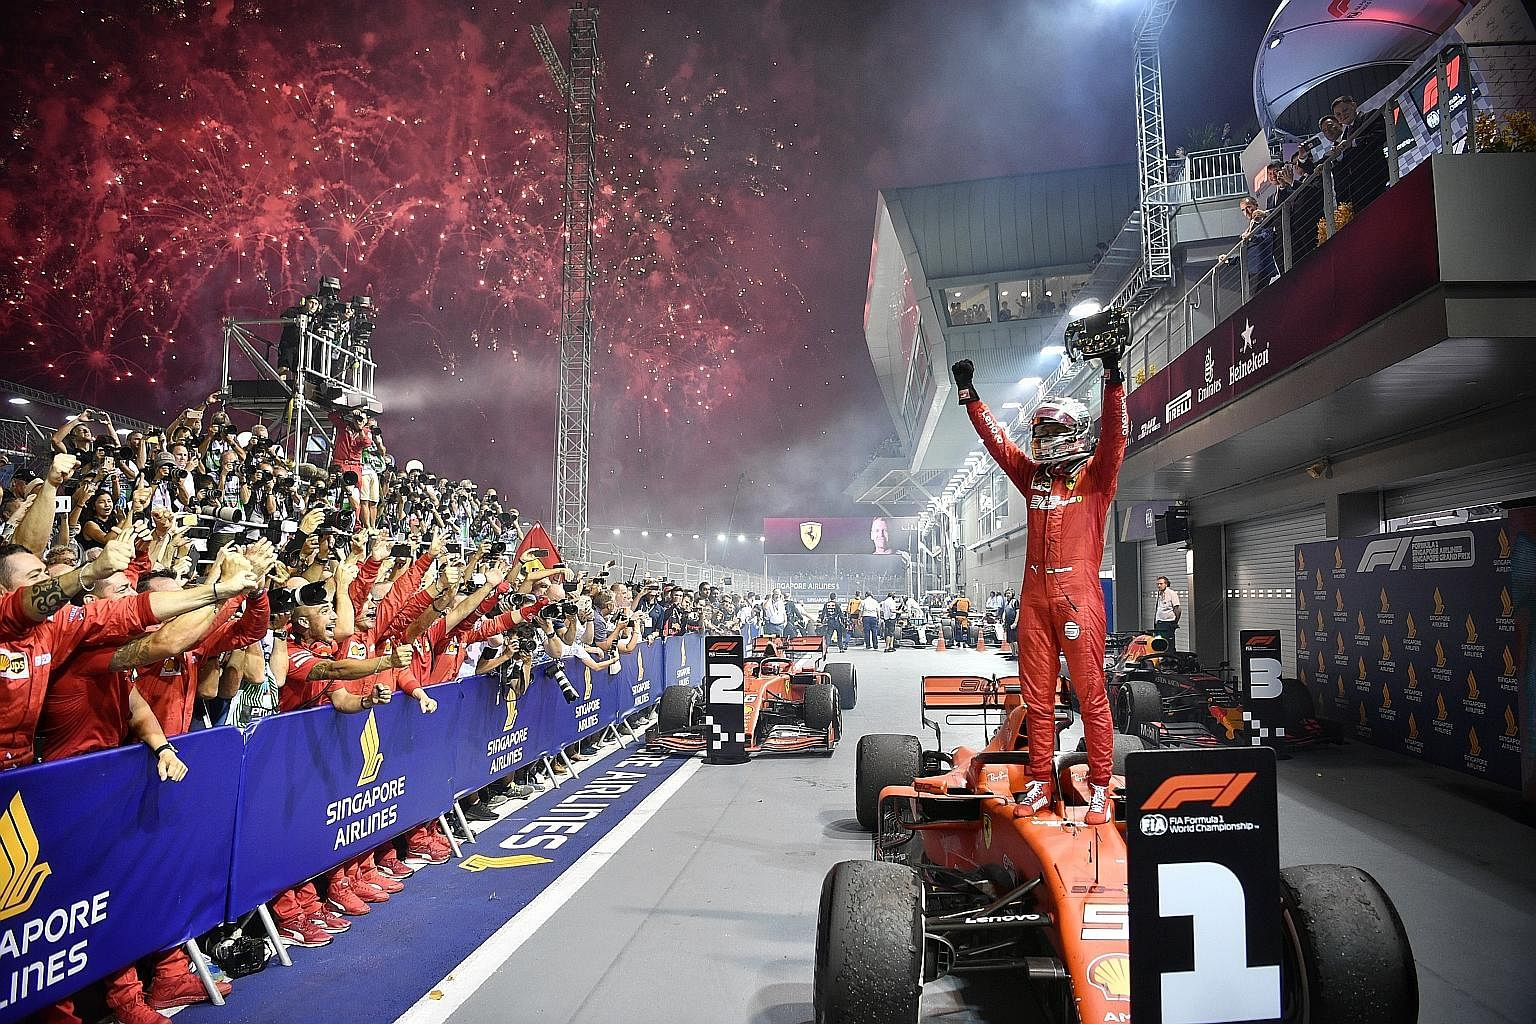 Ferrari's Sebastian Vettel celebrates after winning a record fifth title at the Singapore Airlines Singapore Grand Prix last night. The German four-time world champion started the 61-lap race in third place, before clinching top spot for his first ra